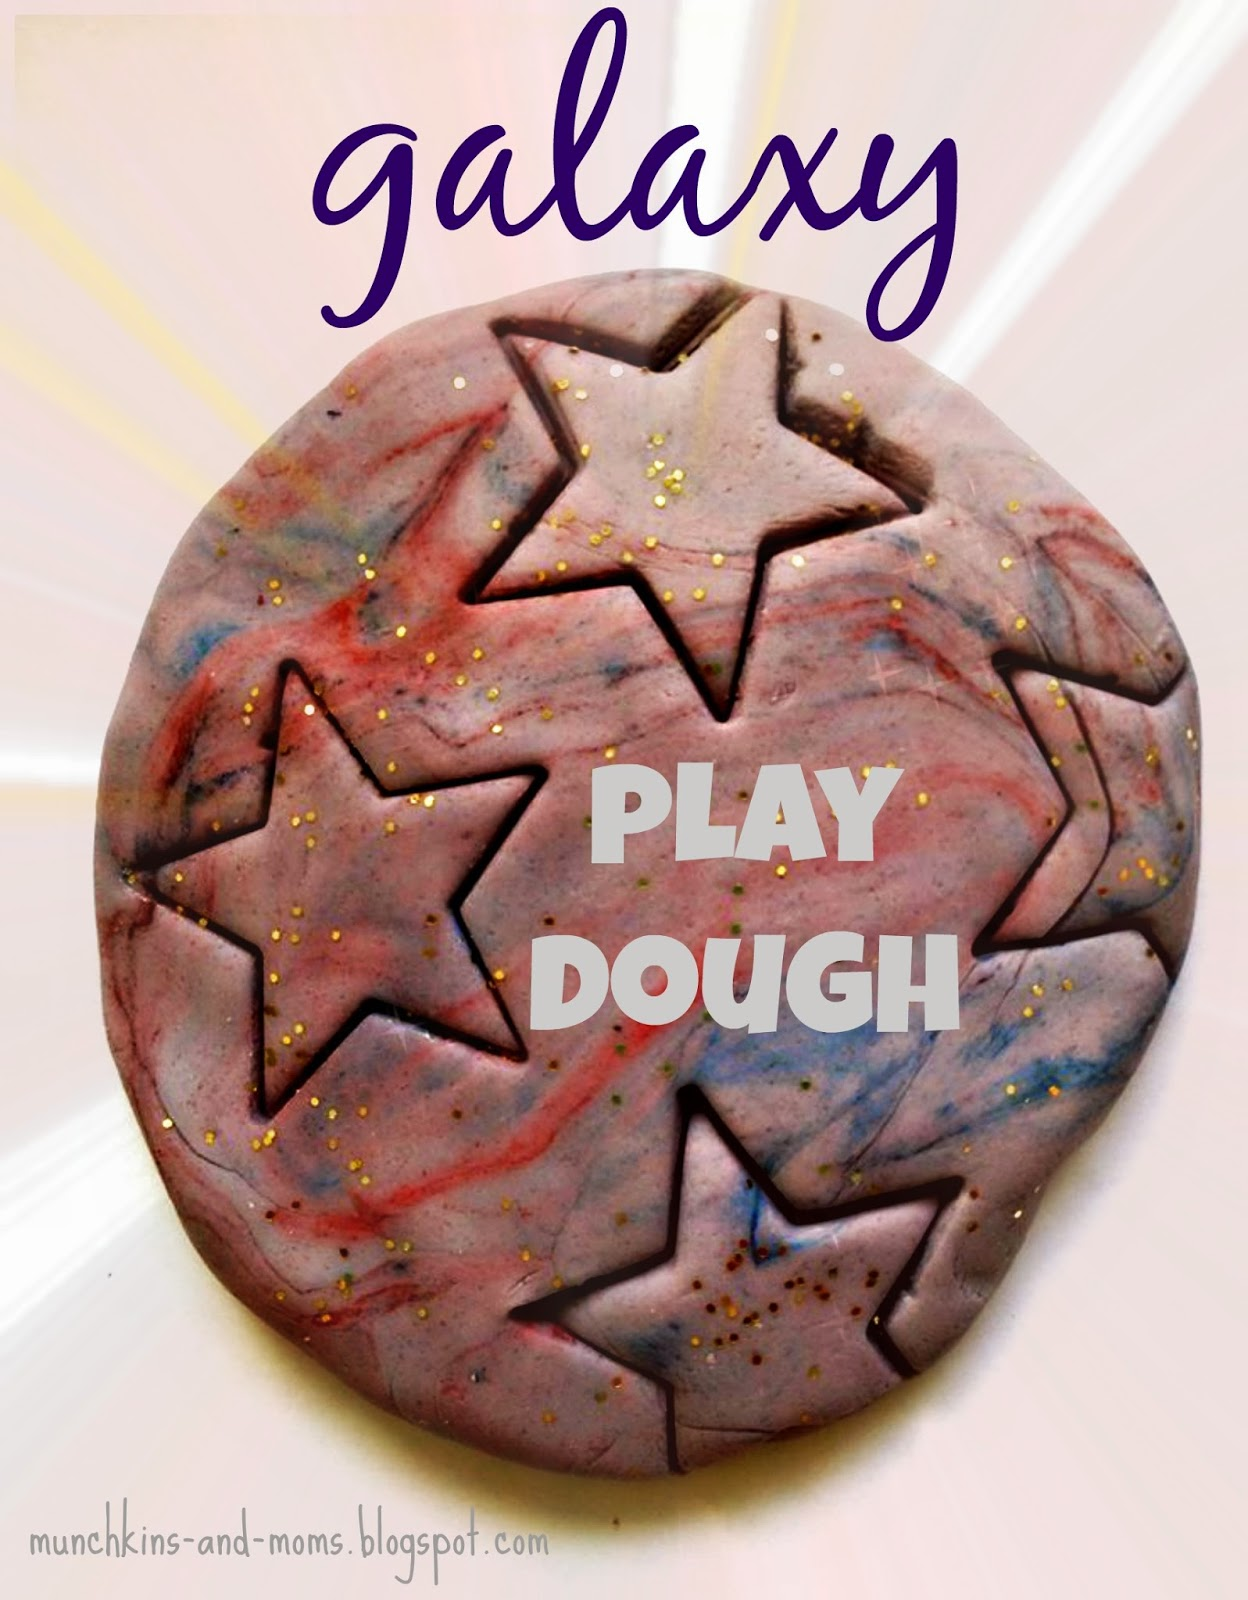 Out of this world galaxy play dough